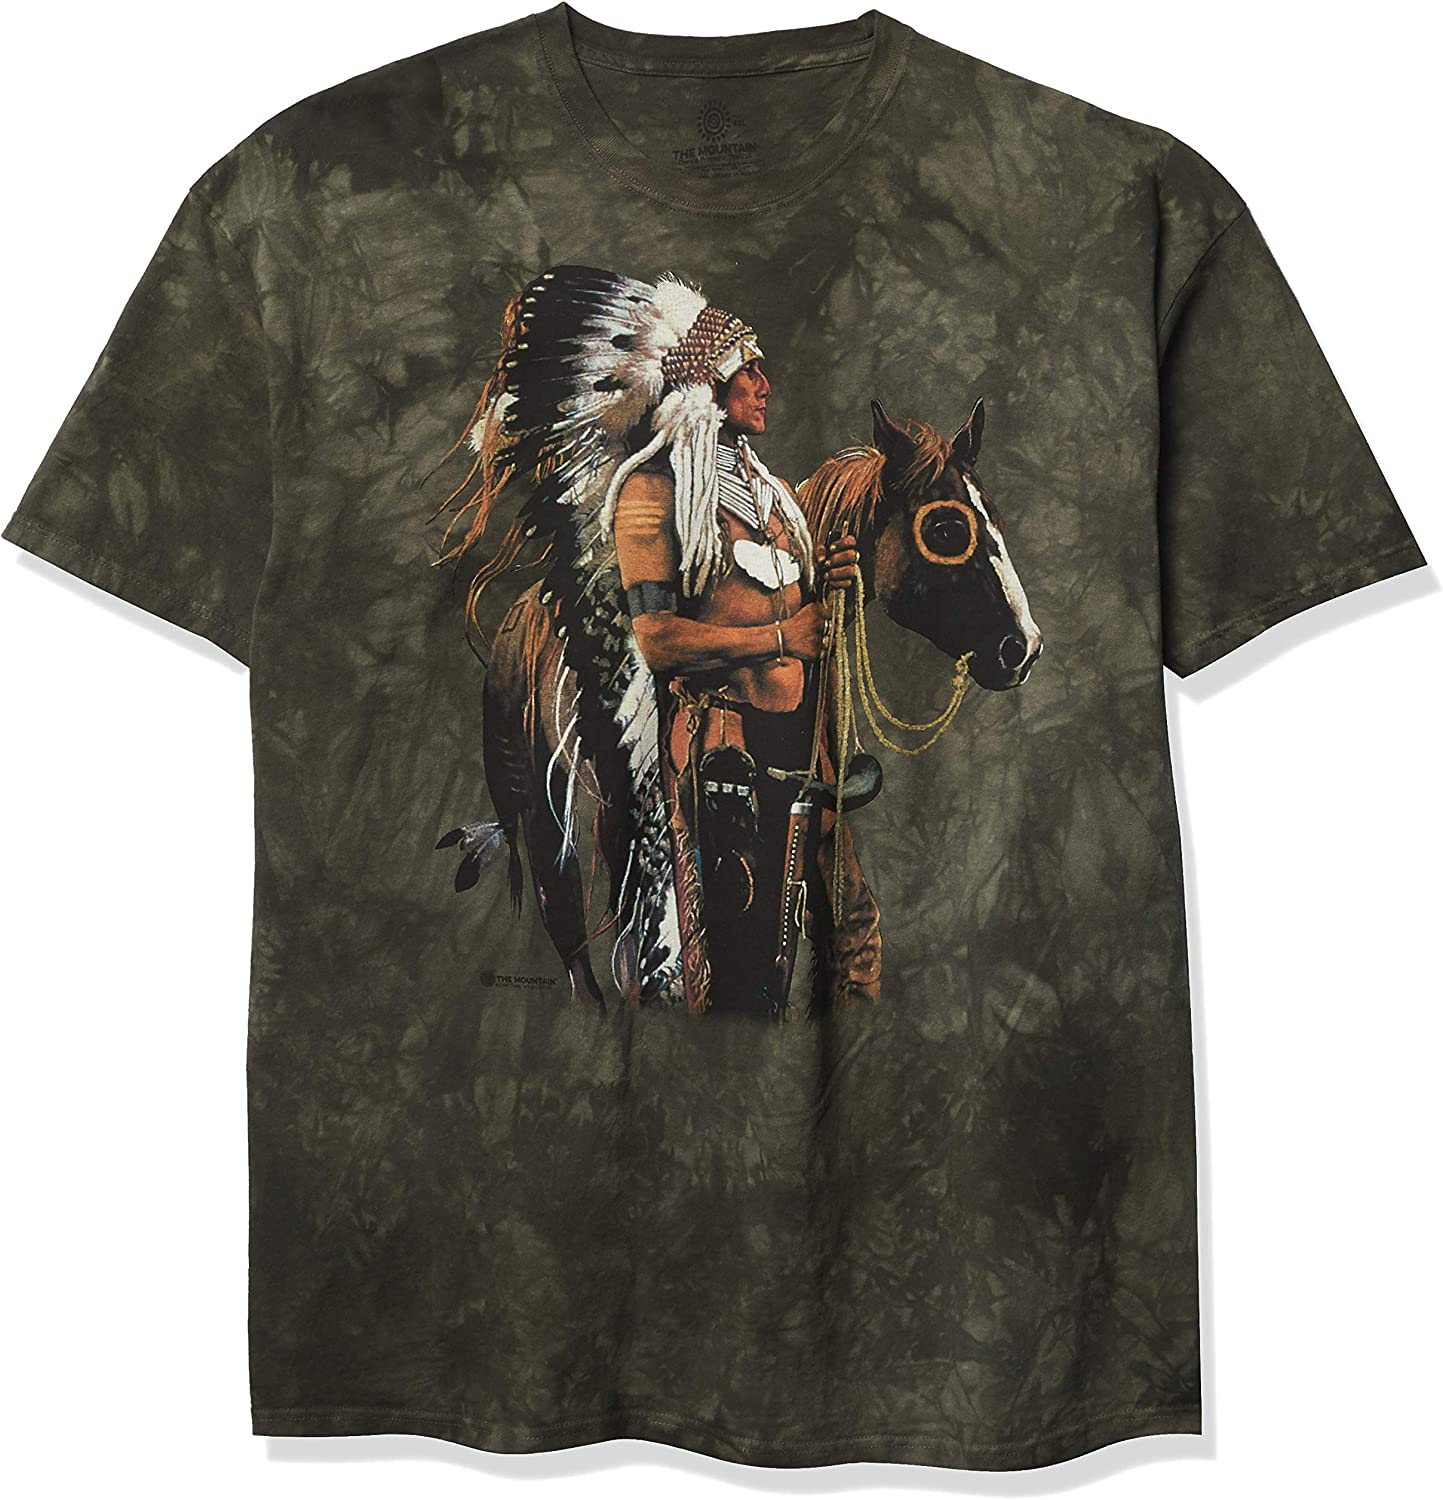 The Over item handling Mountain Men's and Genuine Proud Painted